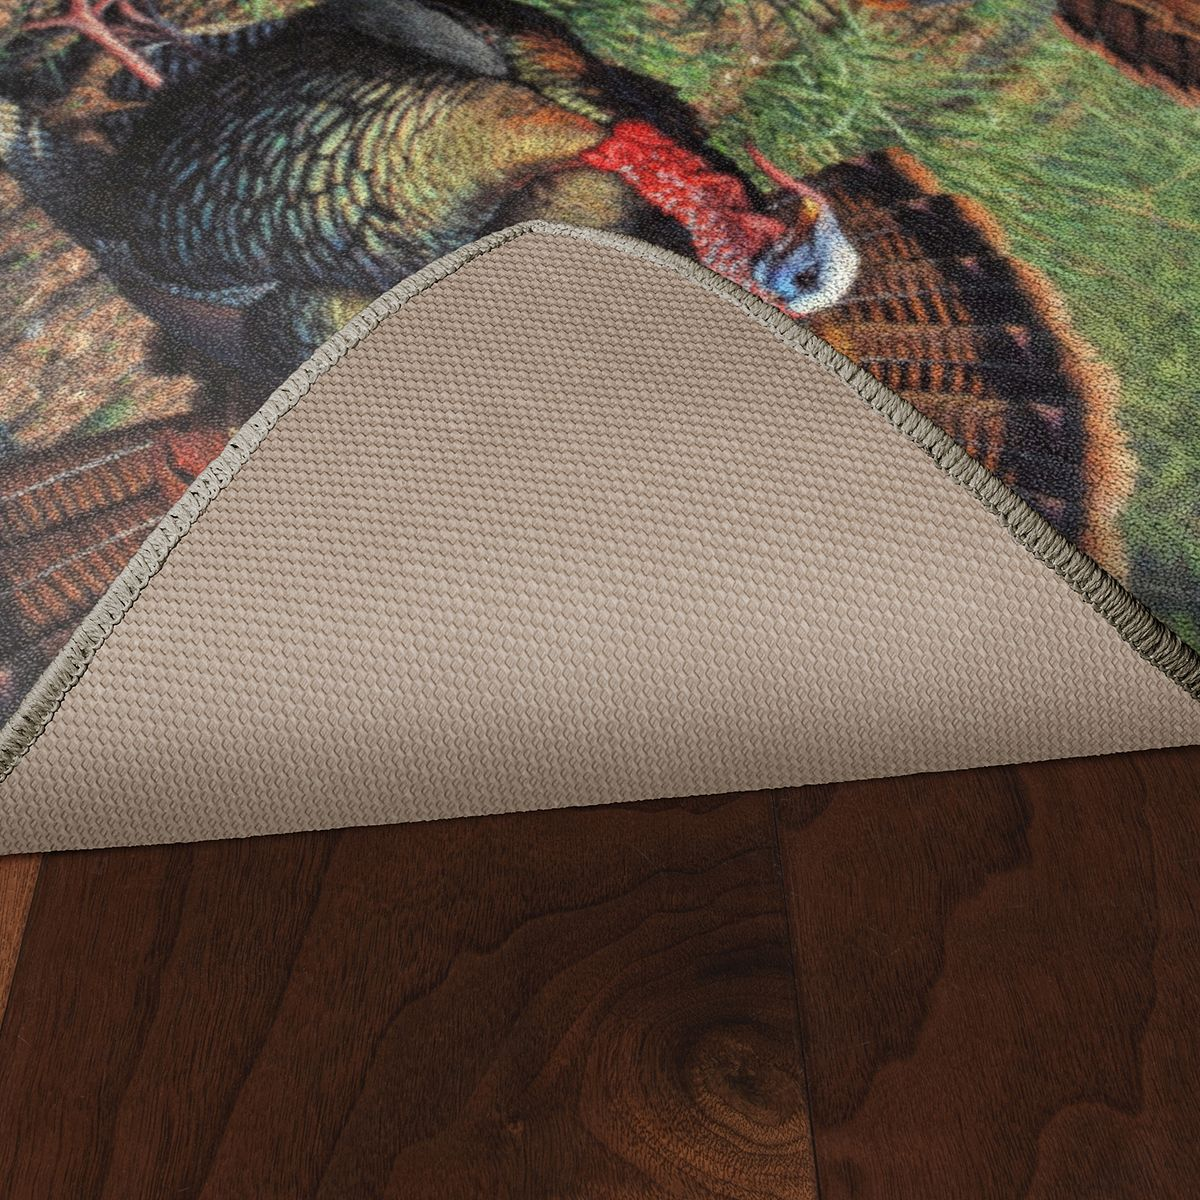 Brumlow Mills Grounded in Tradition Wild Turkey Printed Rug k1Q6D